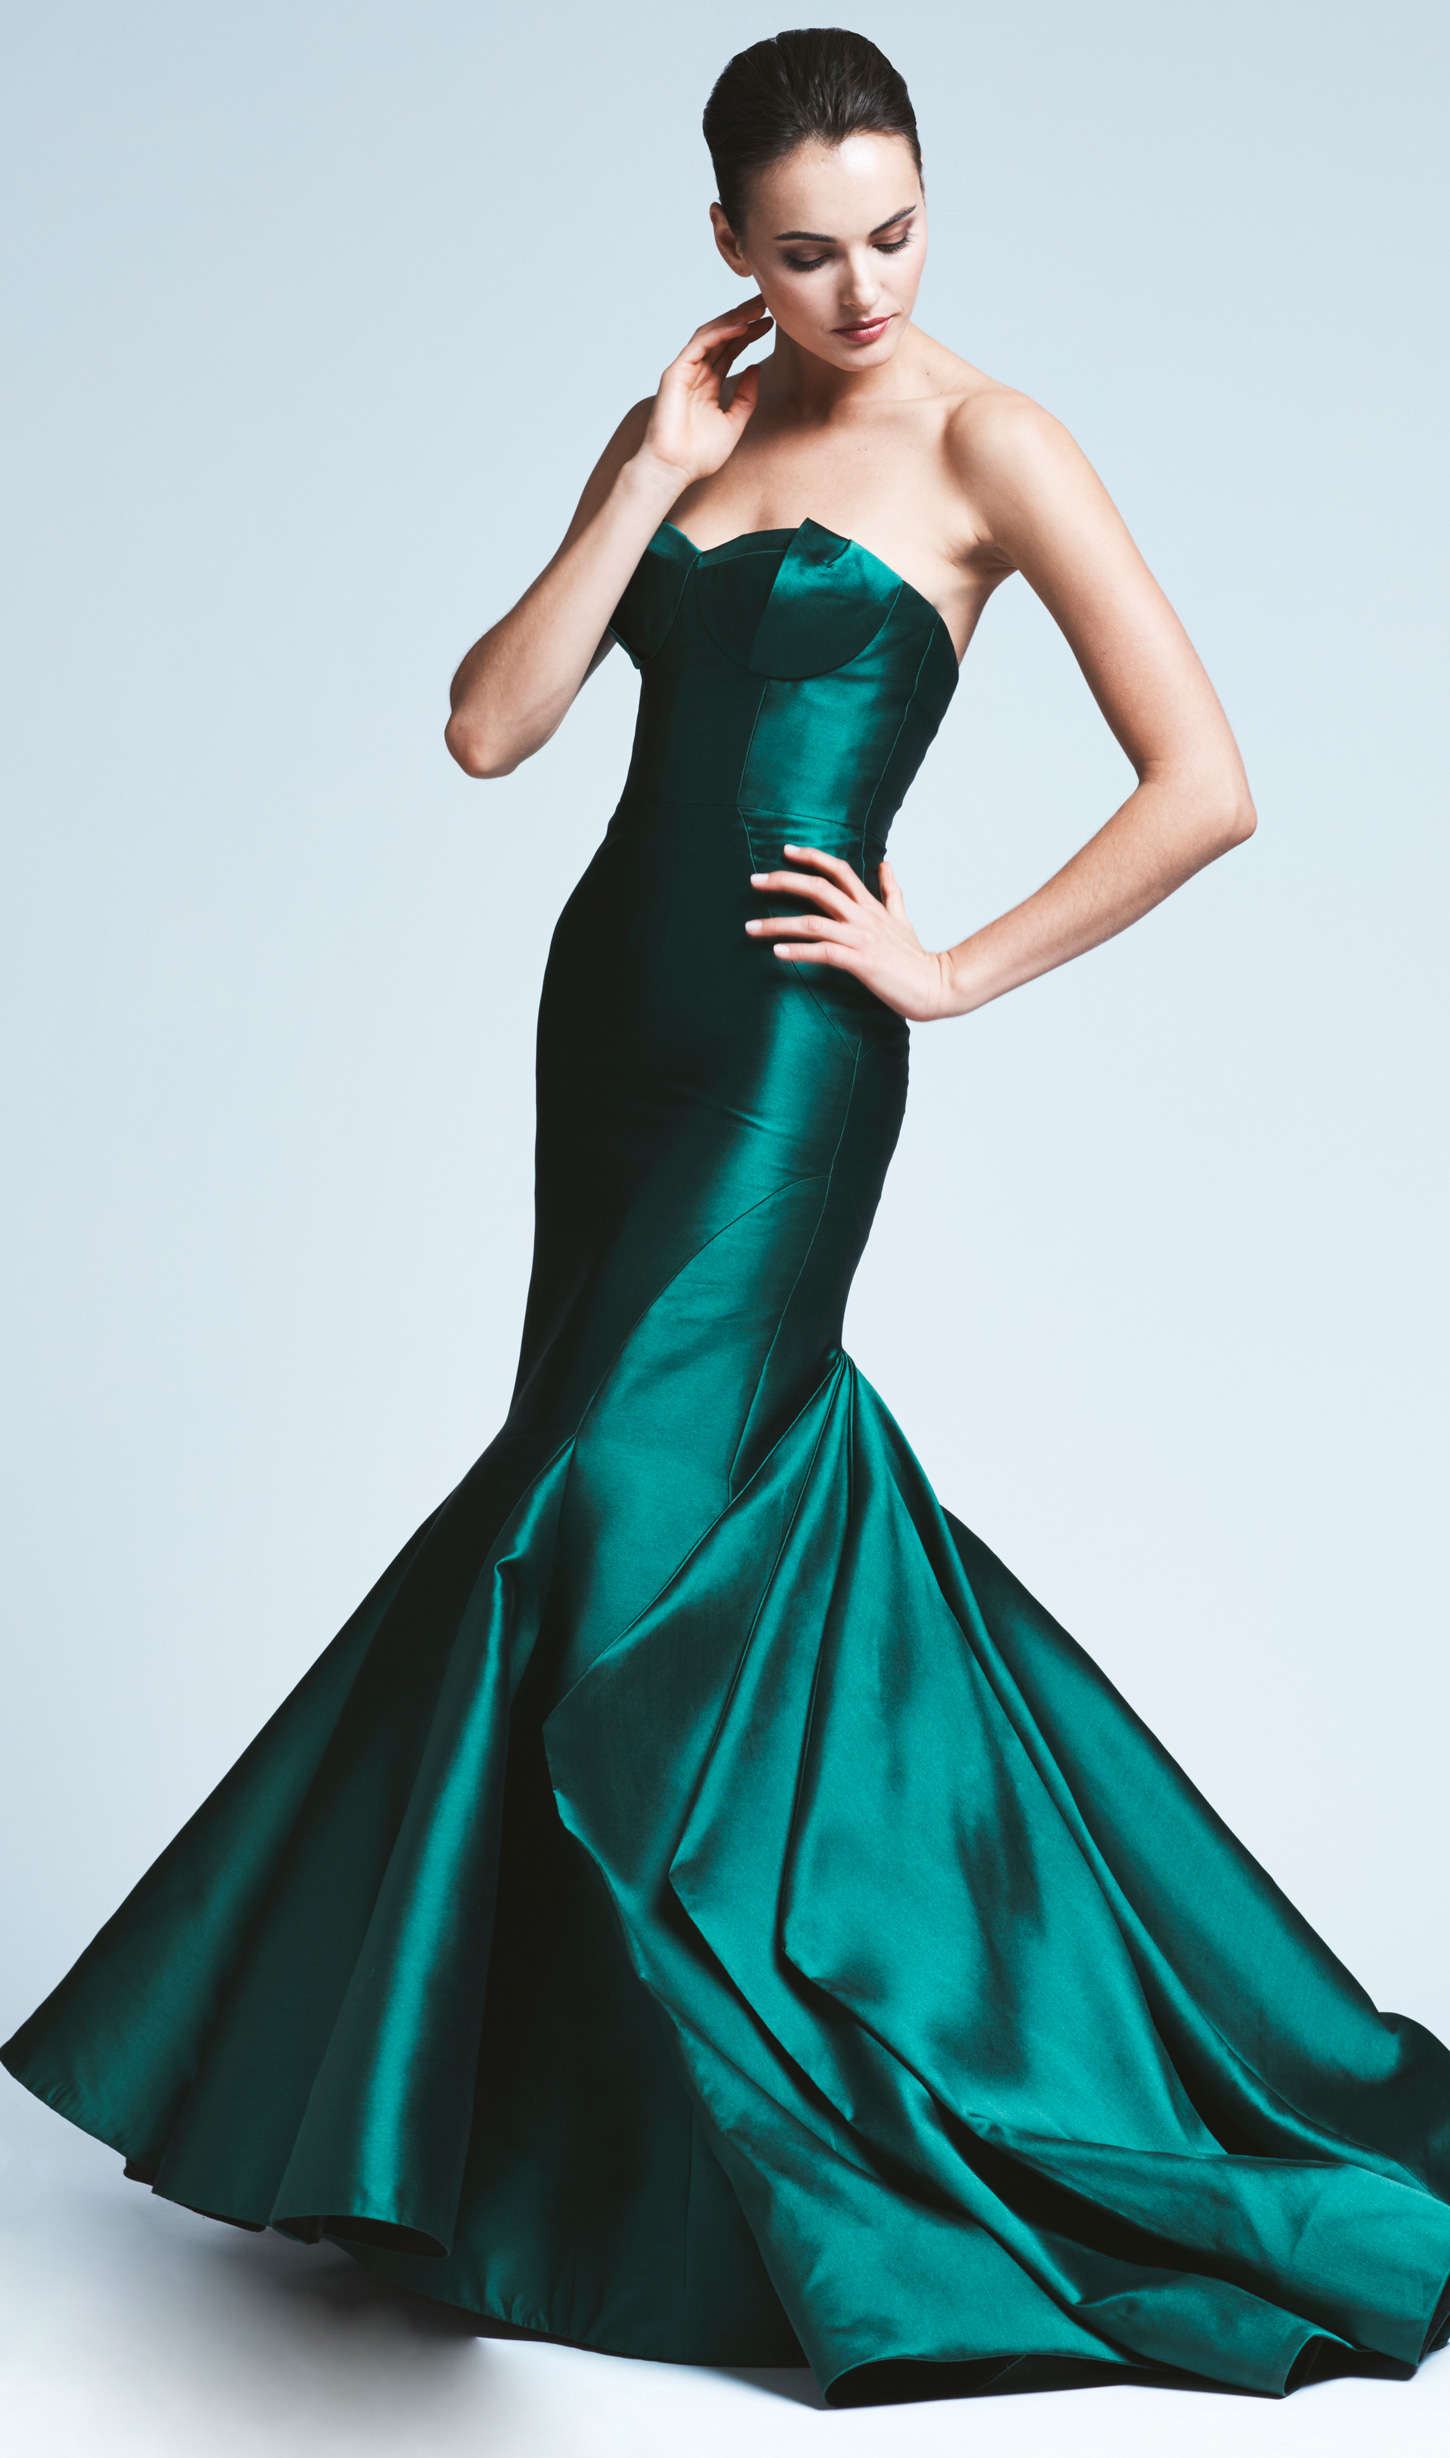 Mira Couture Anne Barge Black Label Natalia Formal Wear Evening Gown Chicago Boutique